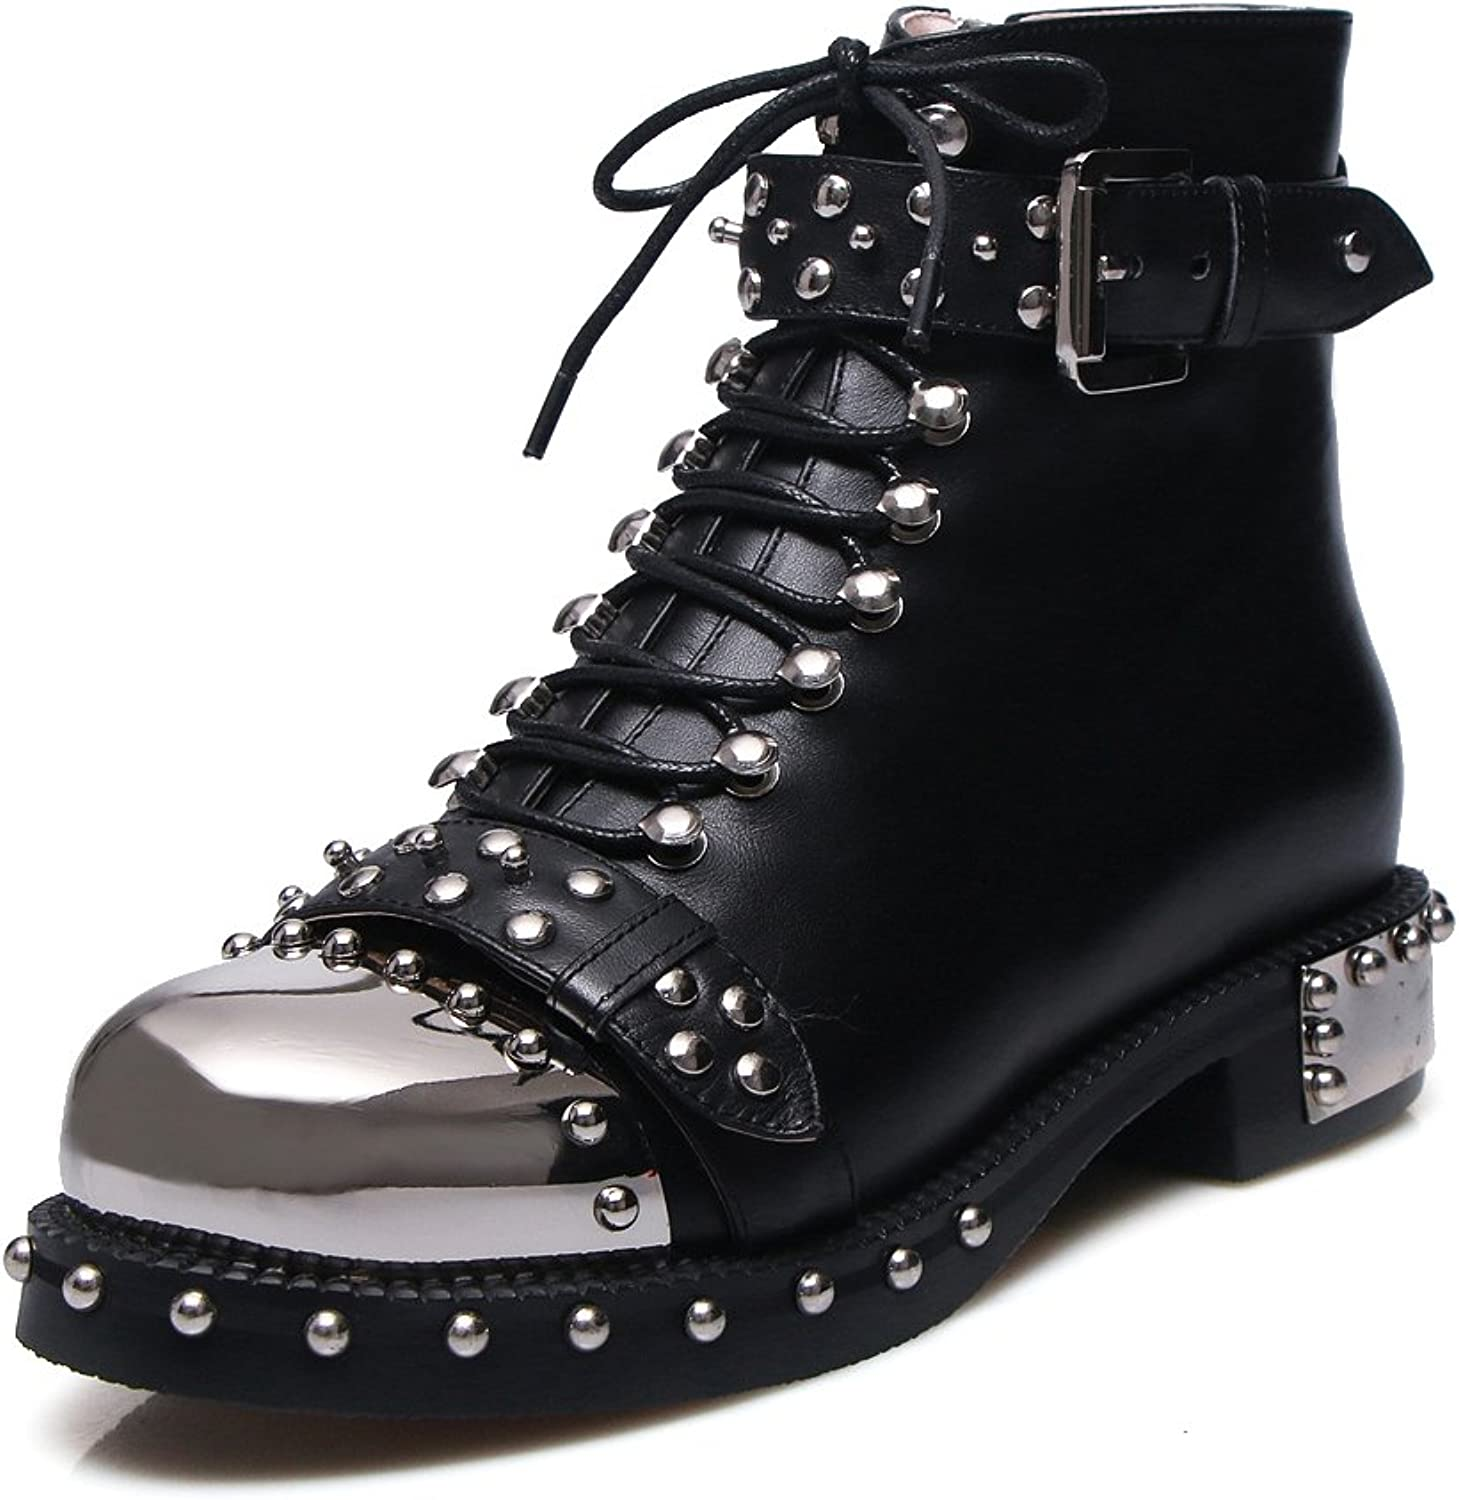 NIQI Women Genuine Leather Studded Rivets Flats Lace Up Sequins Military Combact Short Ankle Boots